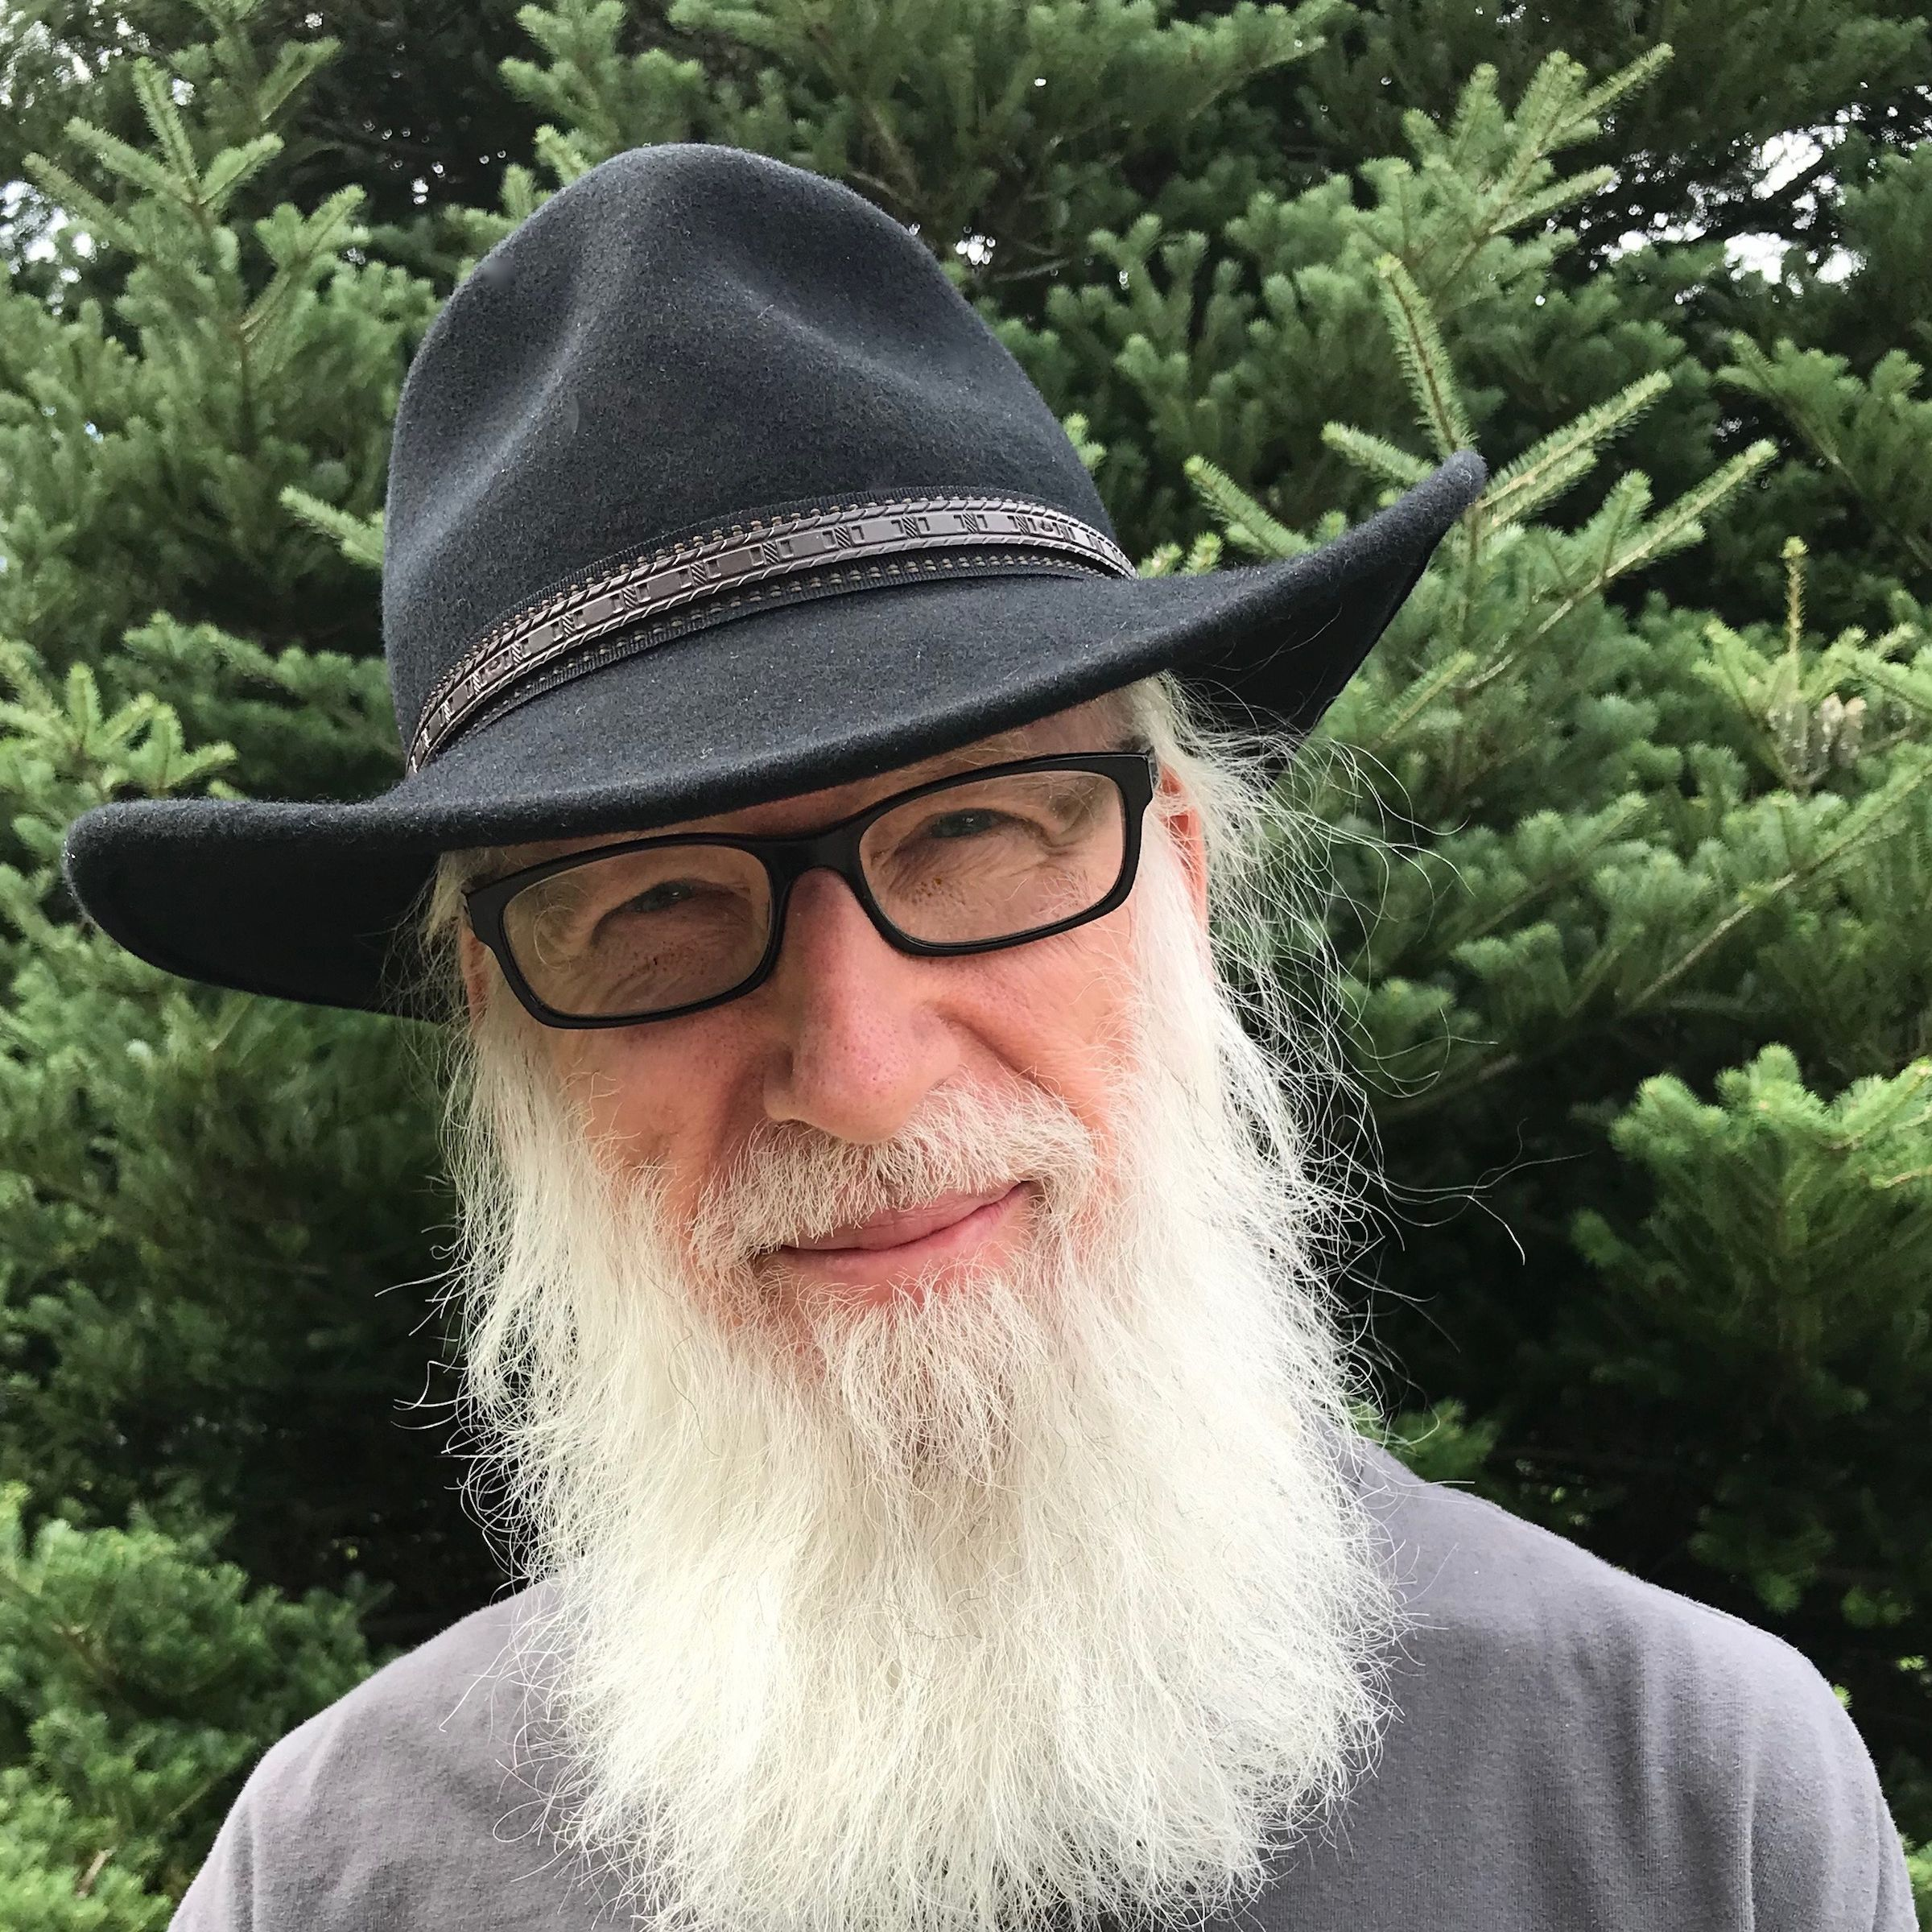 Episode 982 - Mantles of Praise / Banners of Blood: Defeating the Demonic - Dr. William Schnoebelen